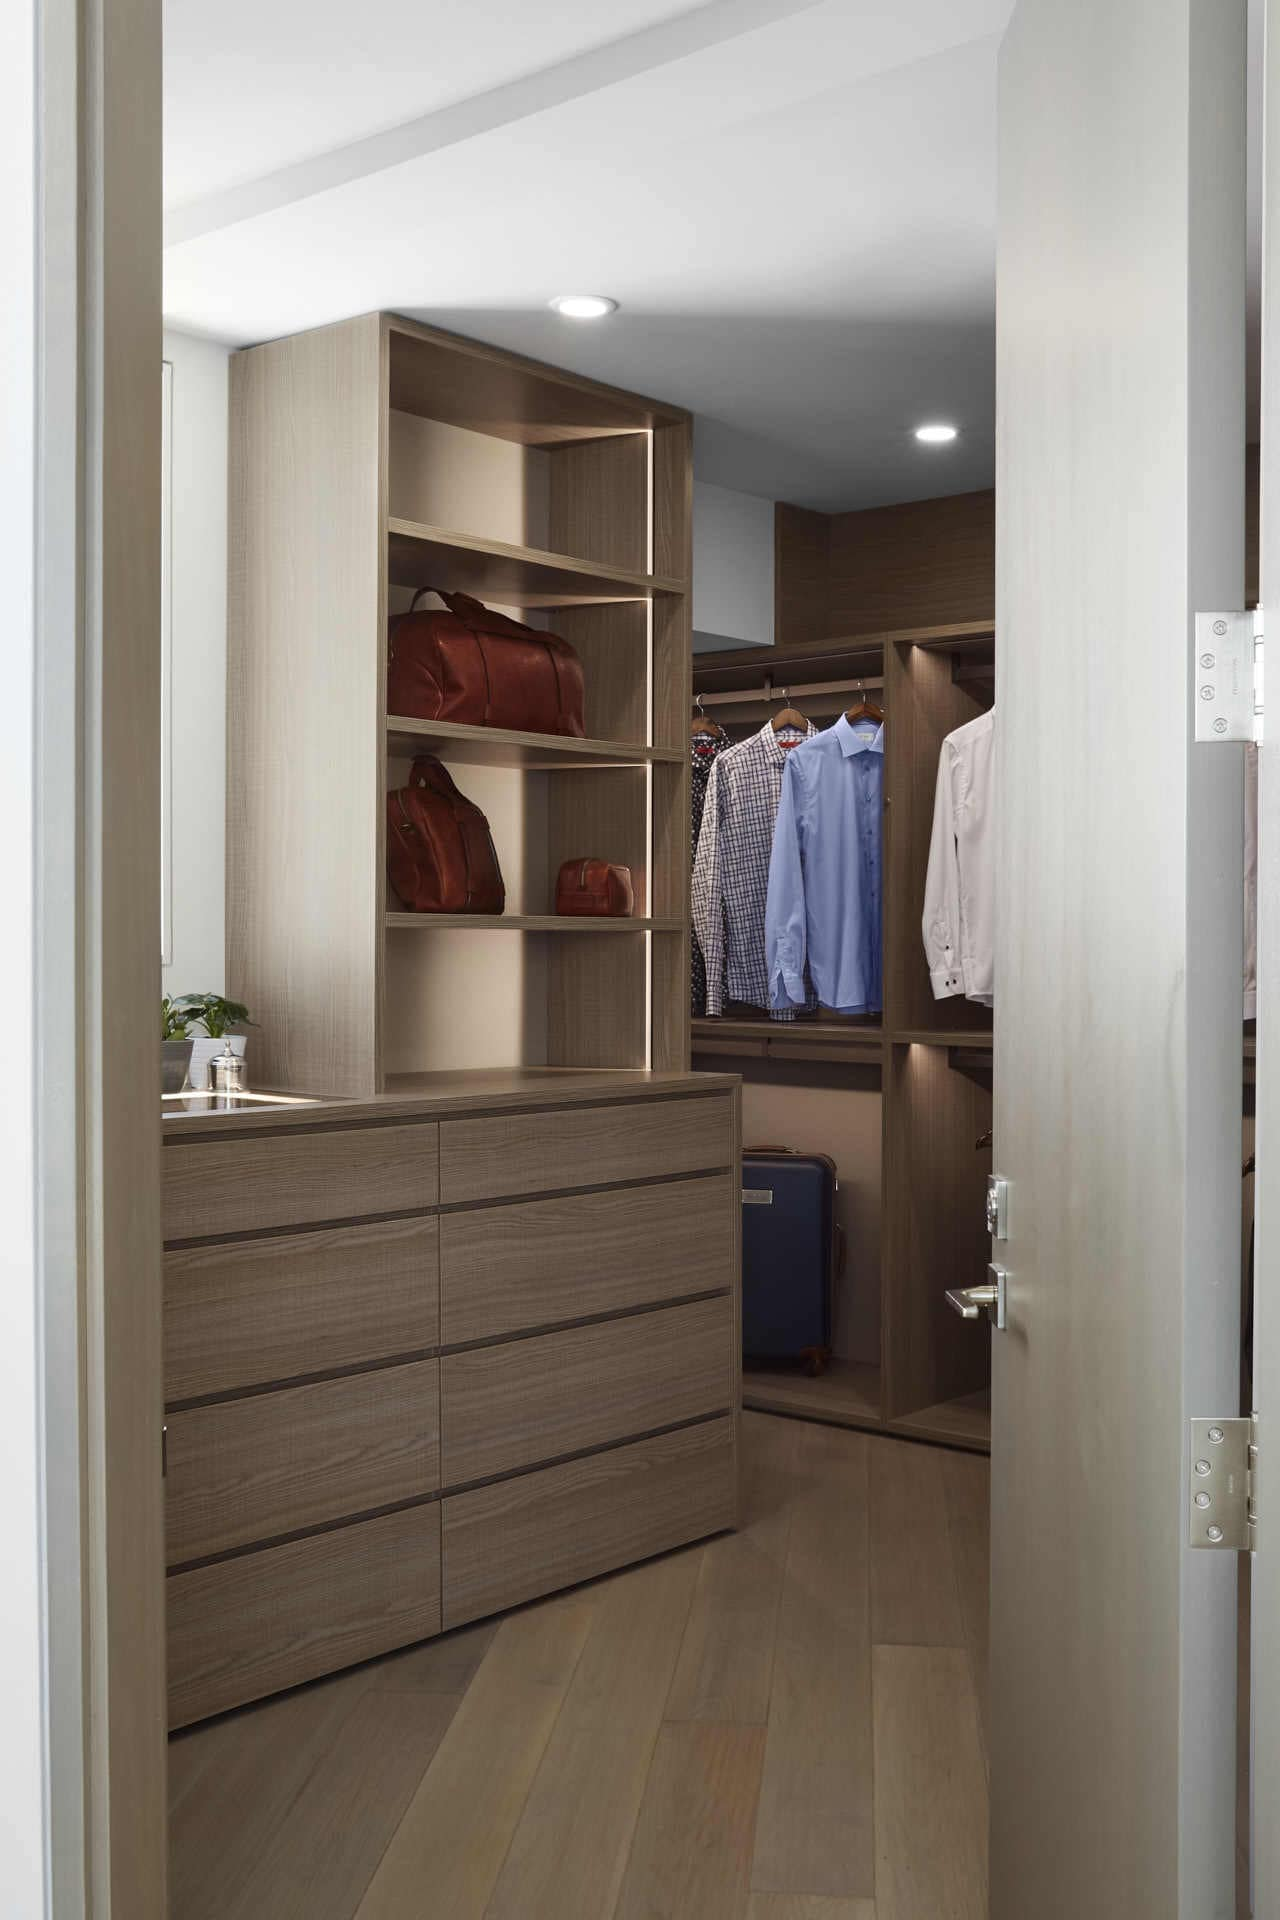 custom luxury schmalenbach closet for the man of the house